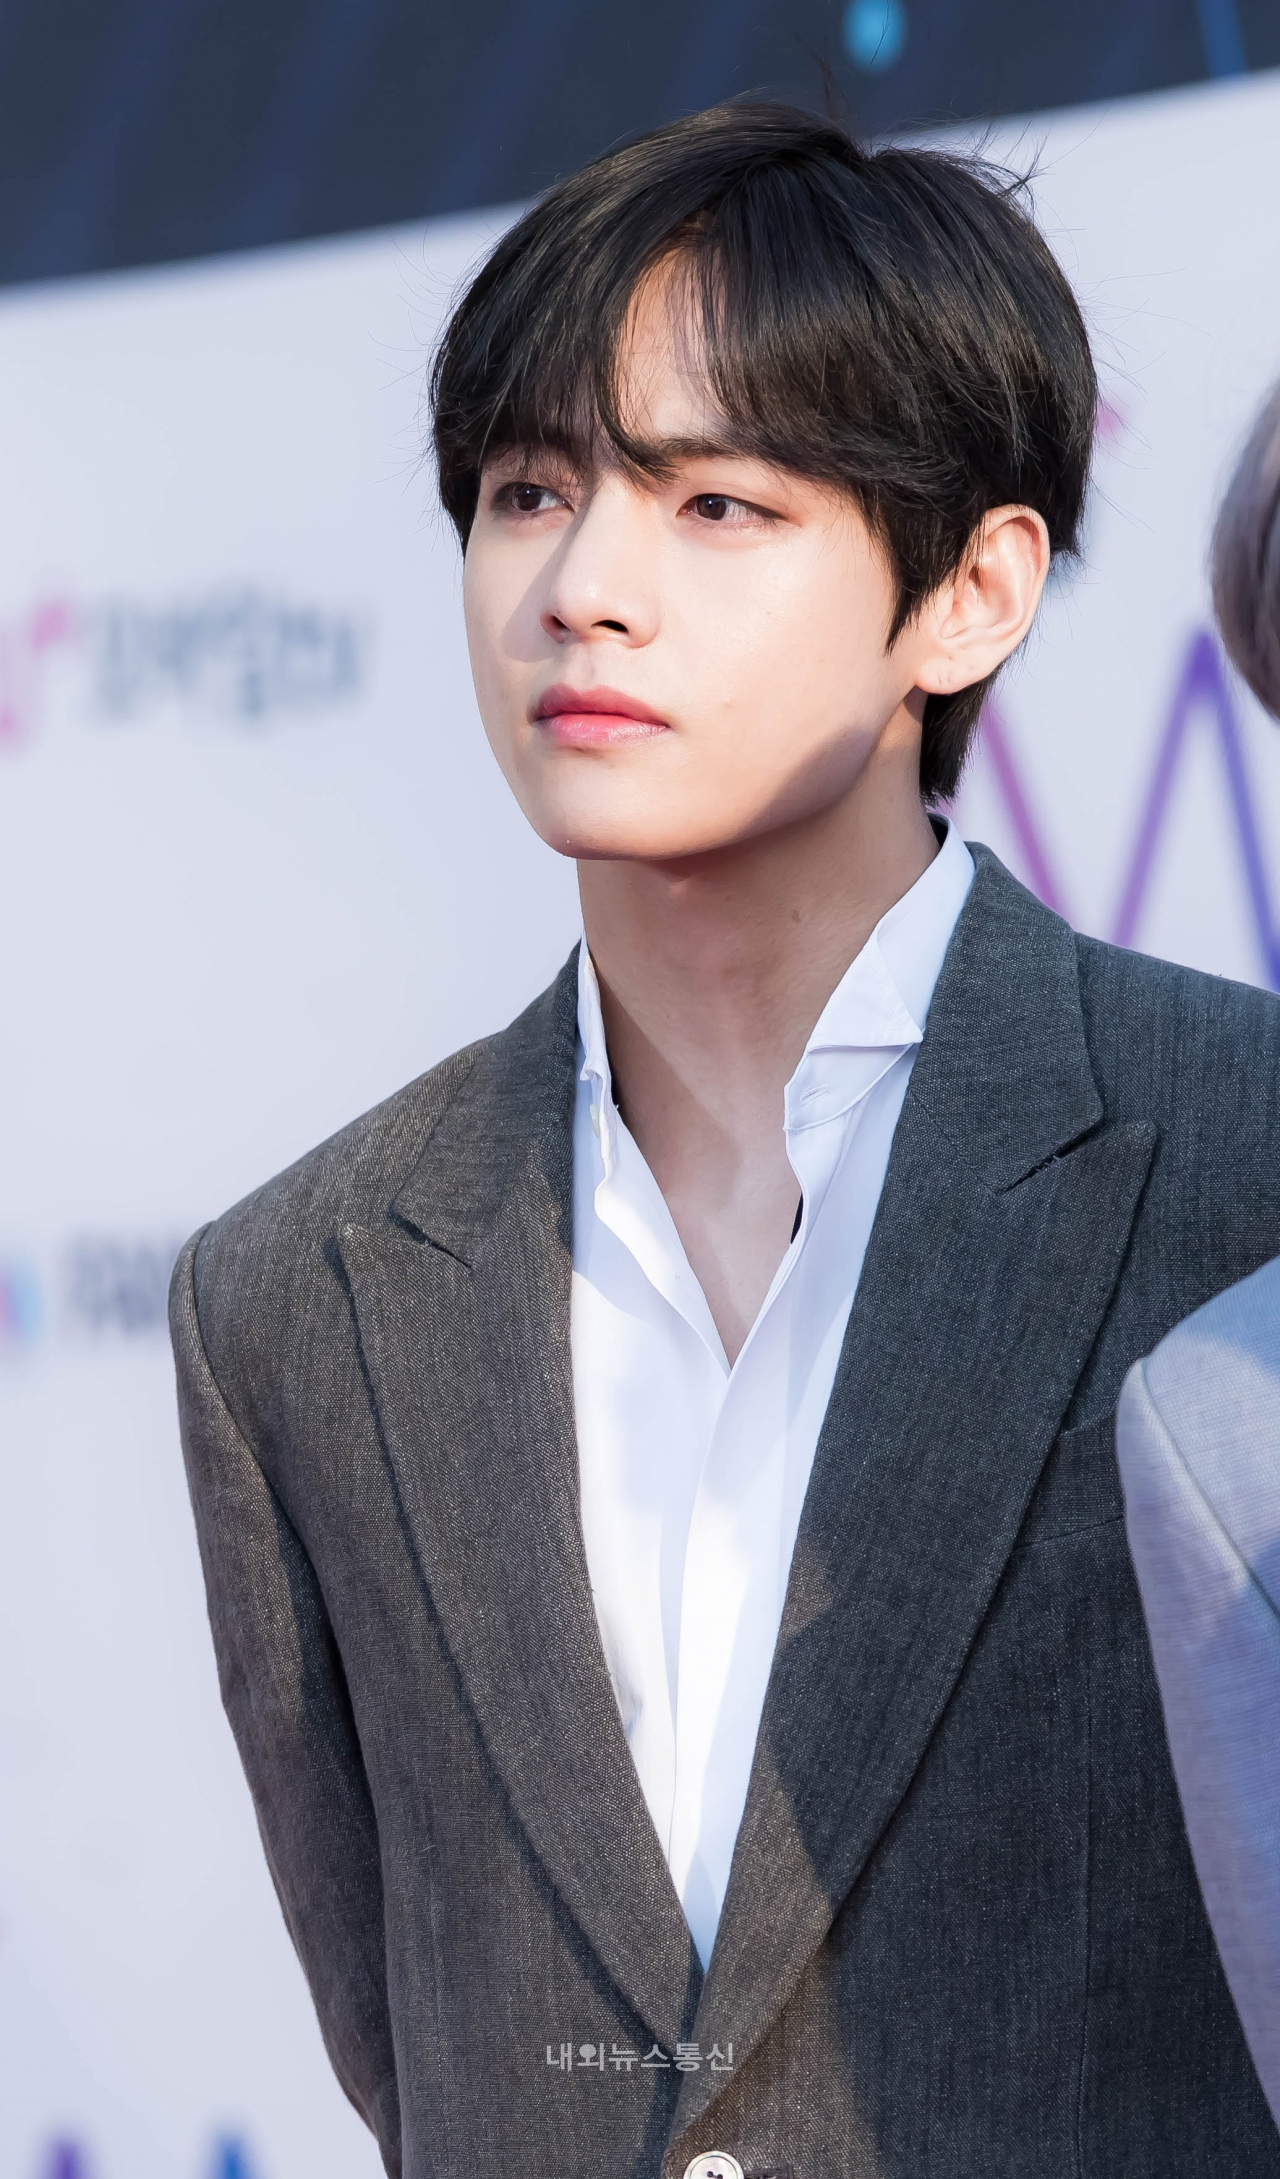 Pngs bts tae hyoung banner black and white stock Pin by Magnum Opus on BTS in 2019 | BTS, Bts taehyung, Bts ... banner black and white stock